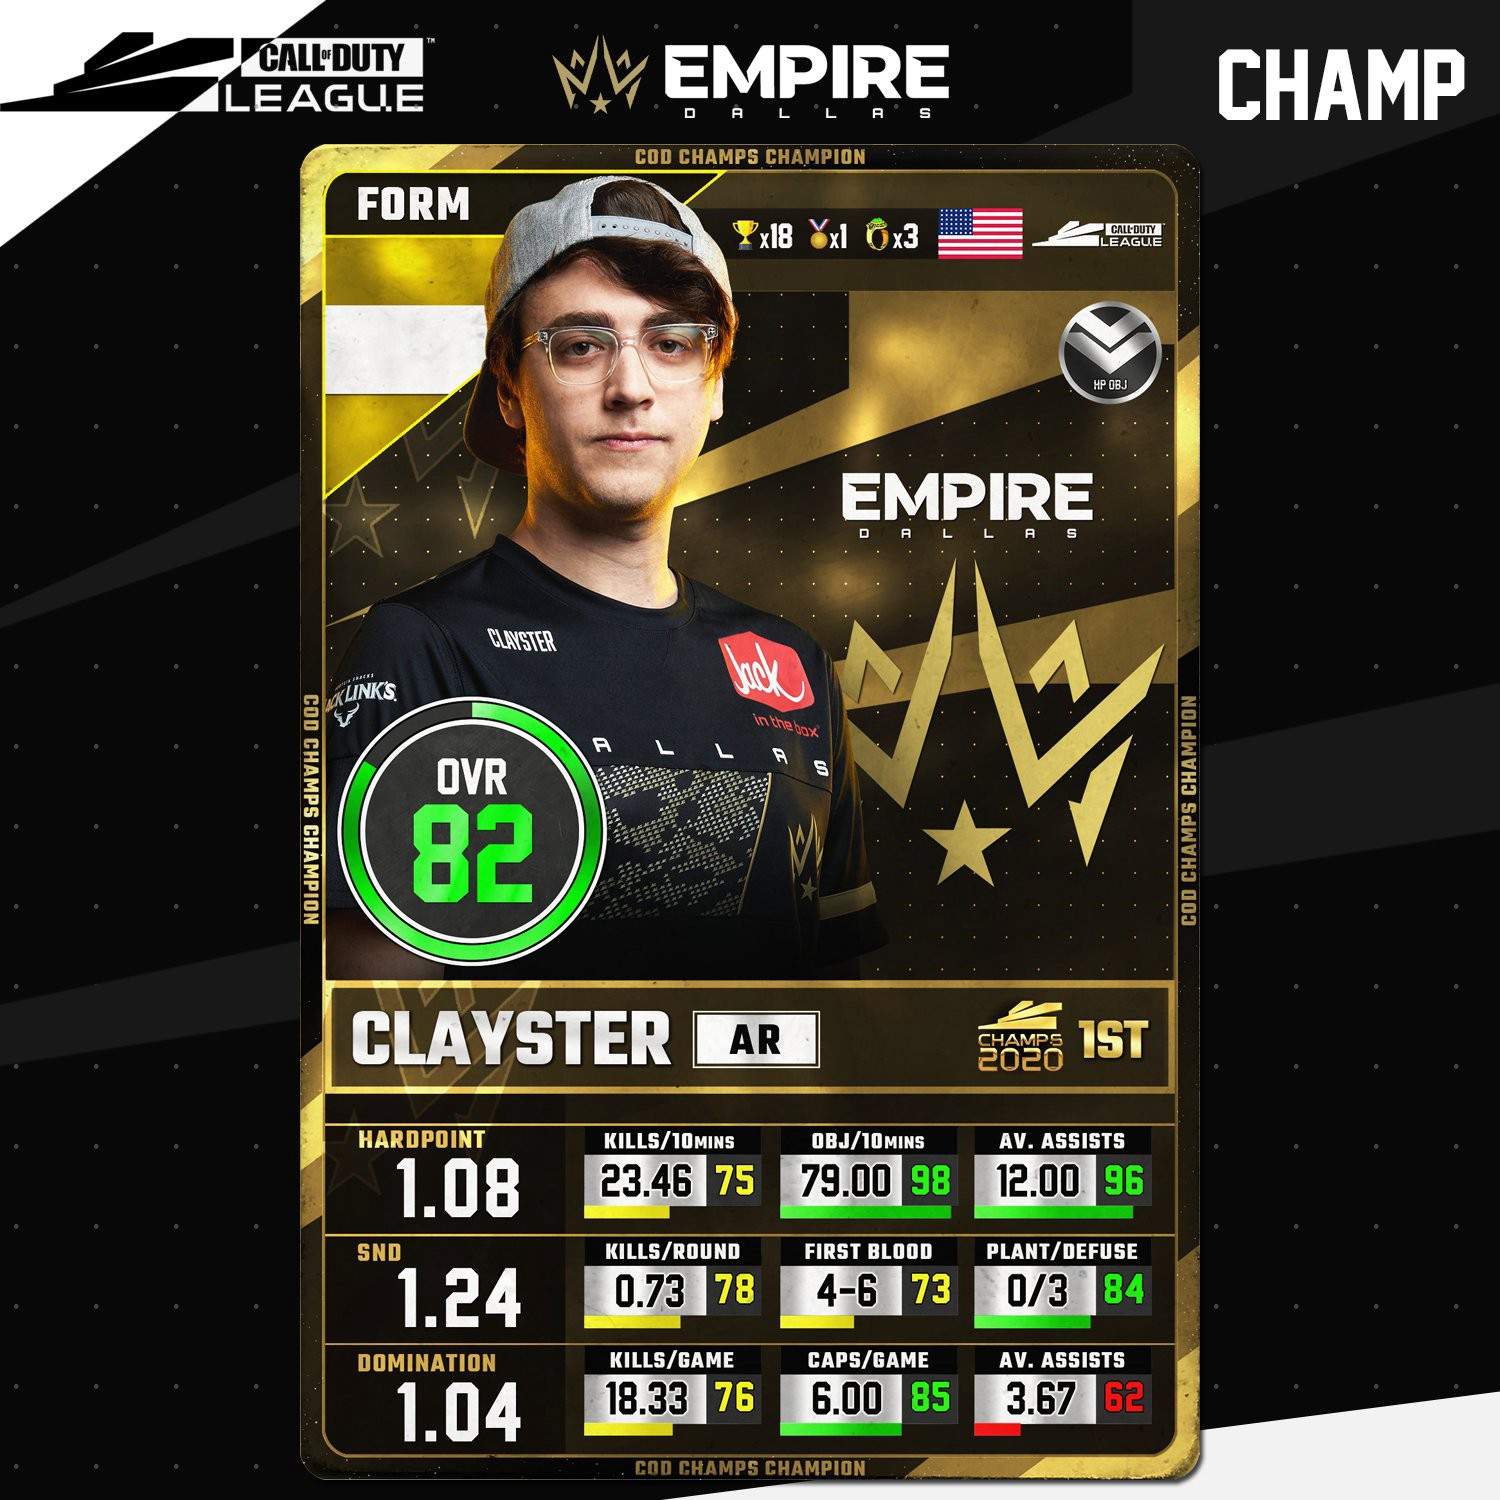 Clayster stats for CDL 2020.